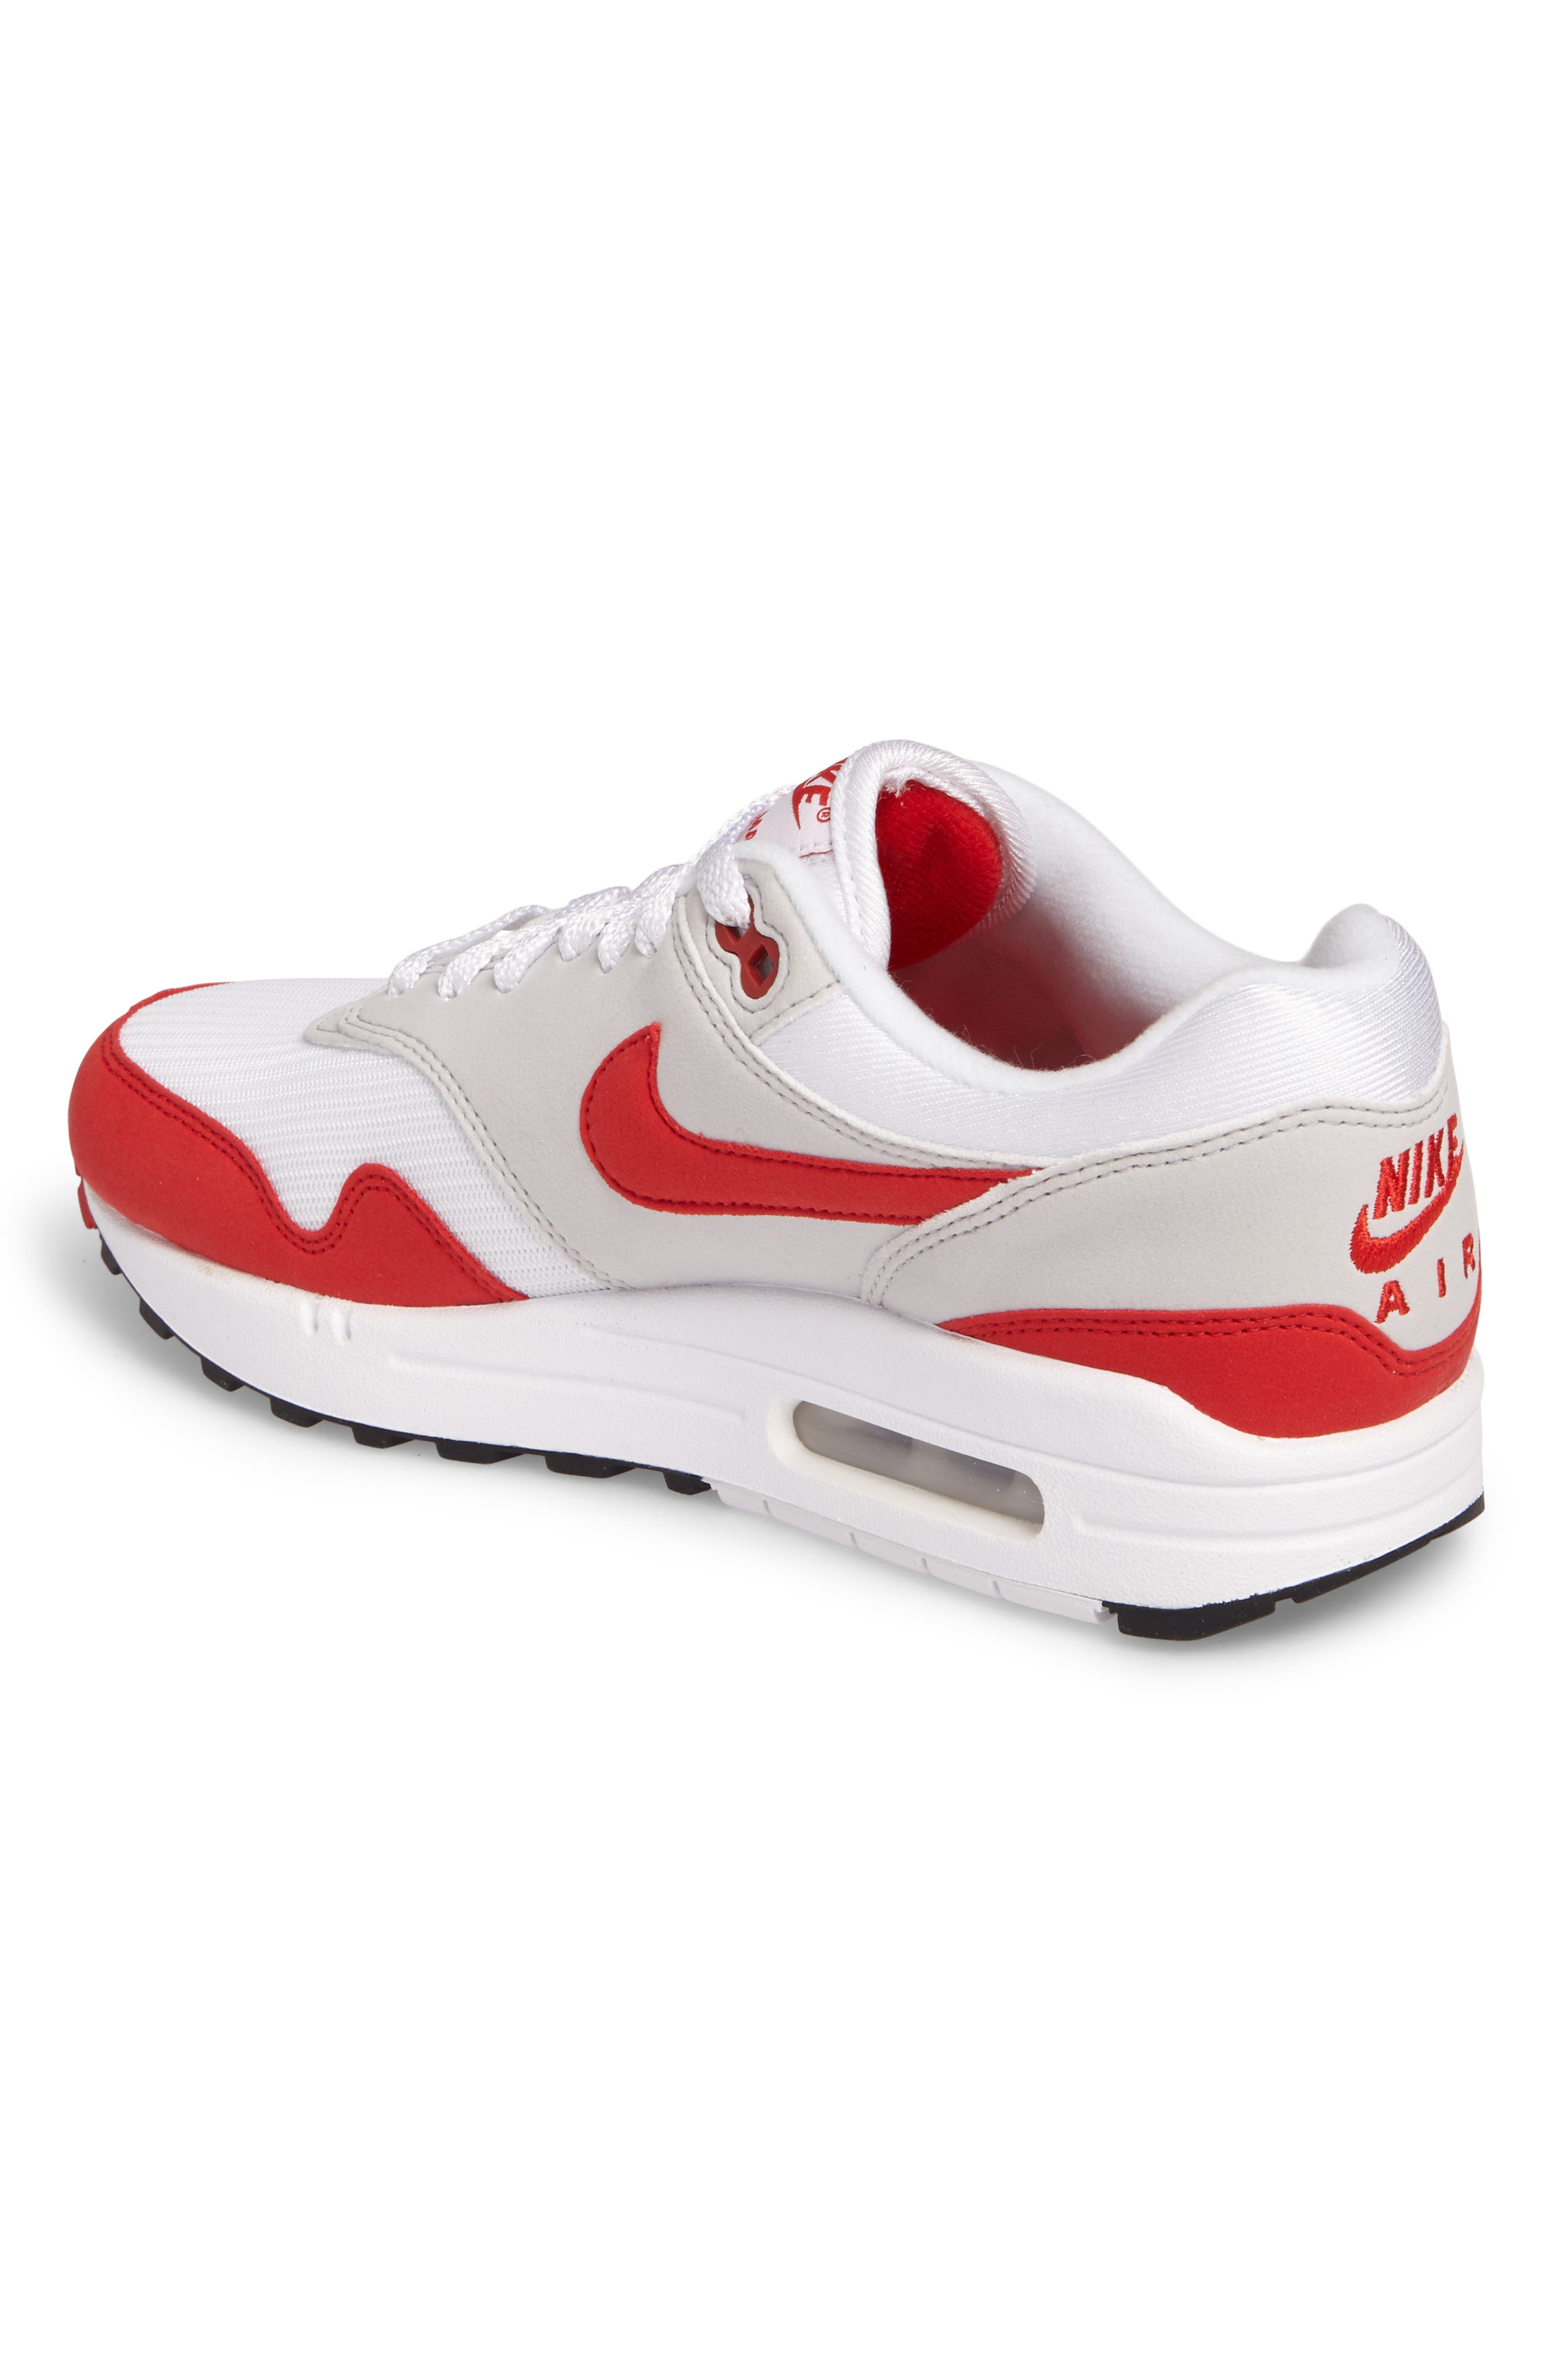 Air Max 1 Anniversary Sneaker,                             Alternate thumbnail 2, color,                             WHITE/ RED/ GREY/ BLACK